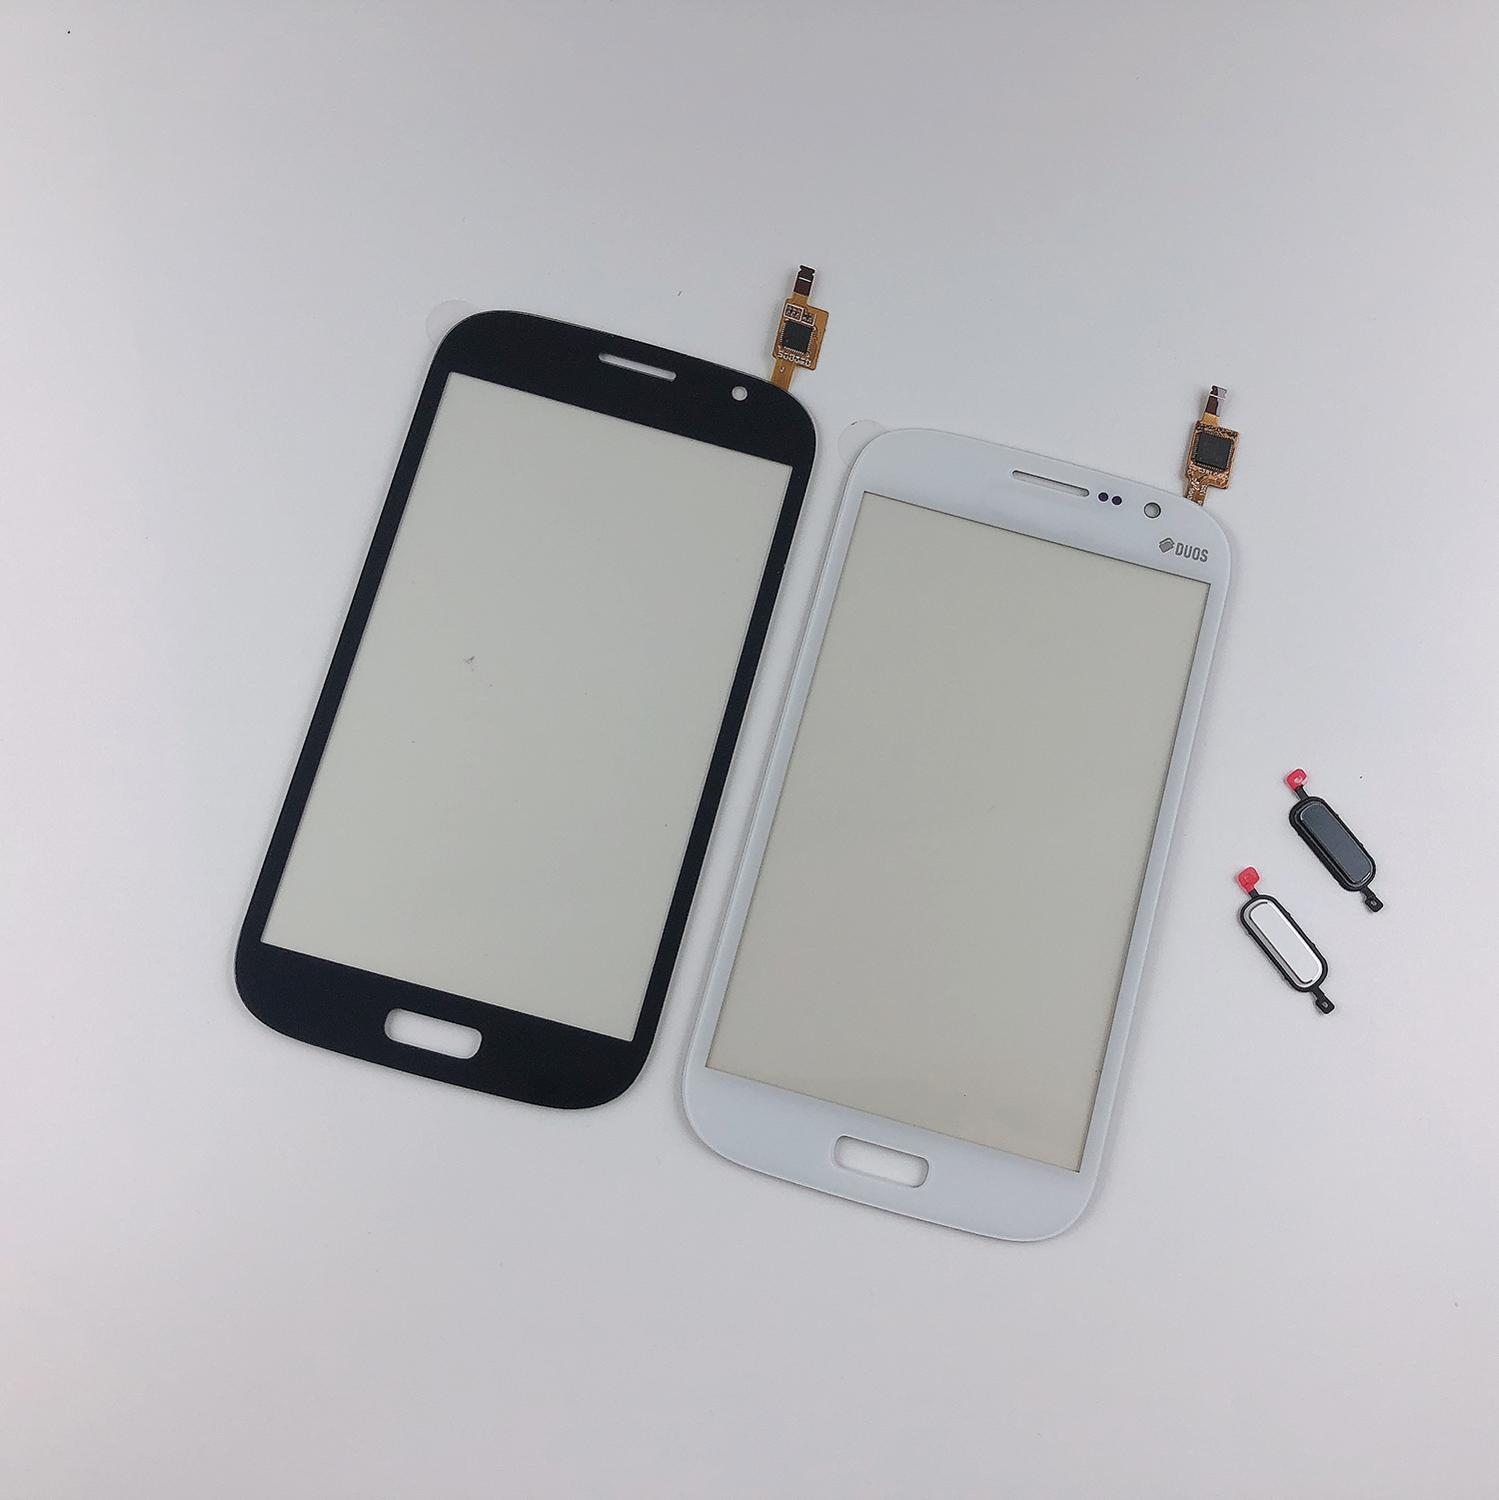 For Samsung Galaxy Grand GT I9082 I9080 Neo I9060 I9062 Touch Screen Digitizer Front Glass Panel+3M Tape+Home Button Return Key